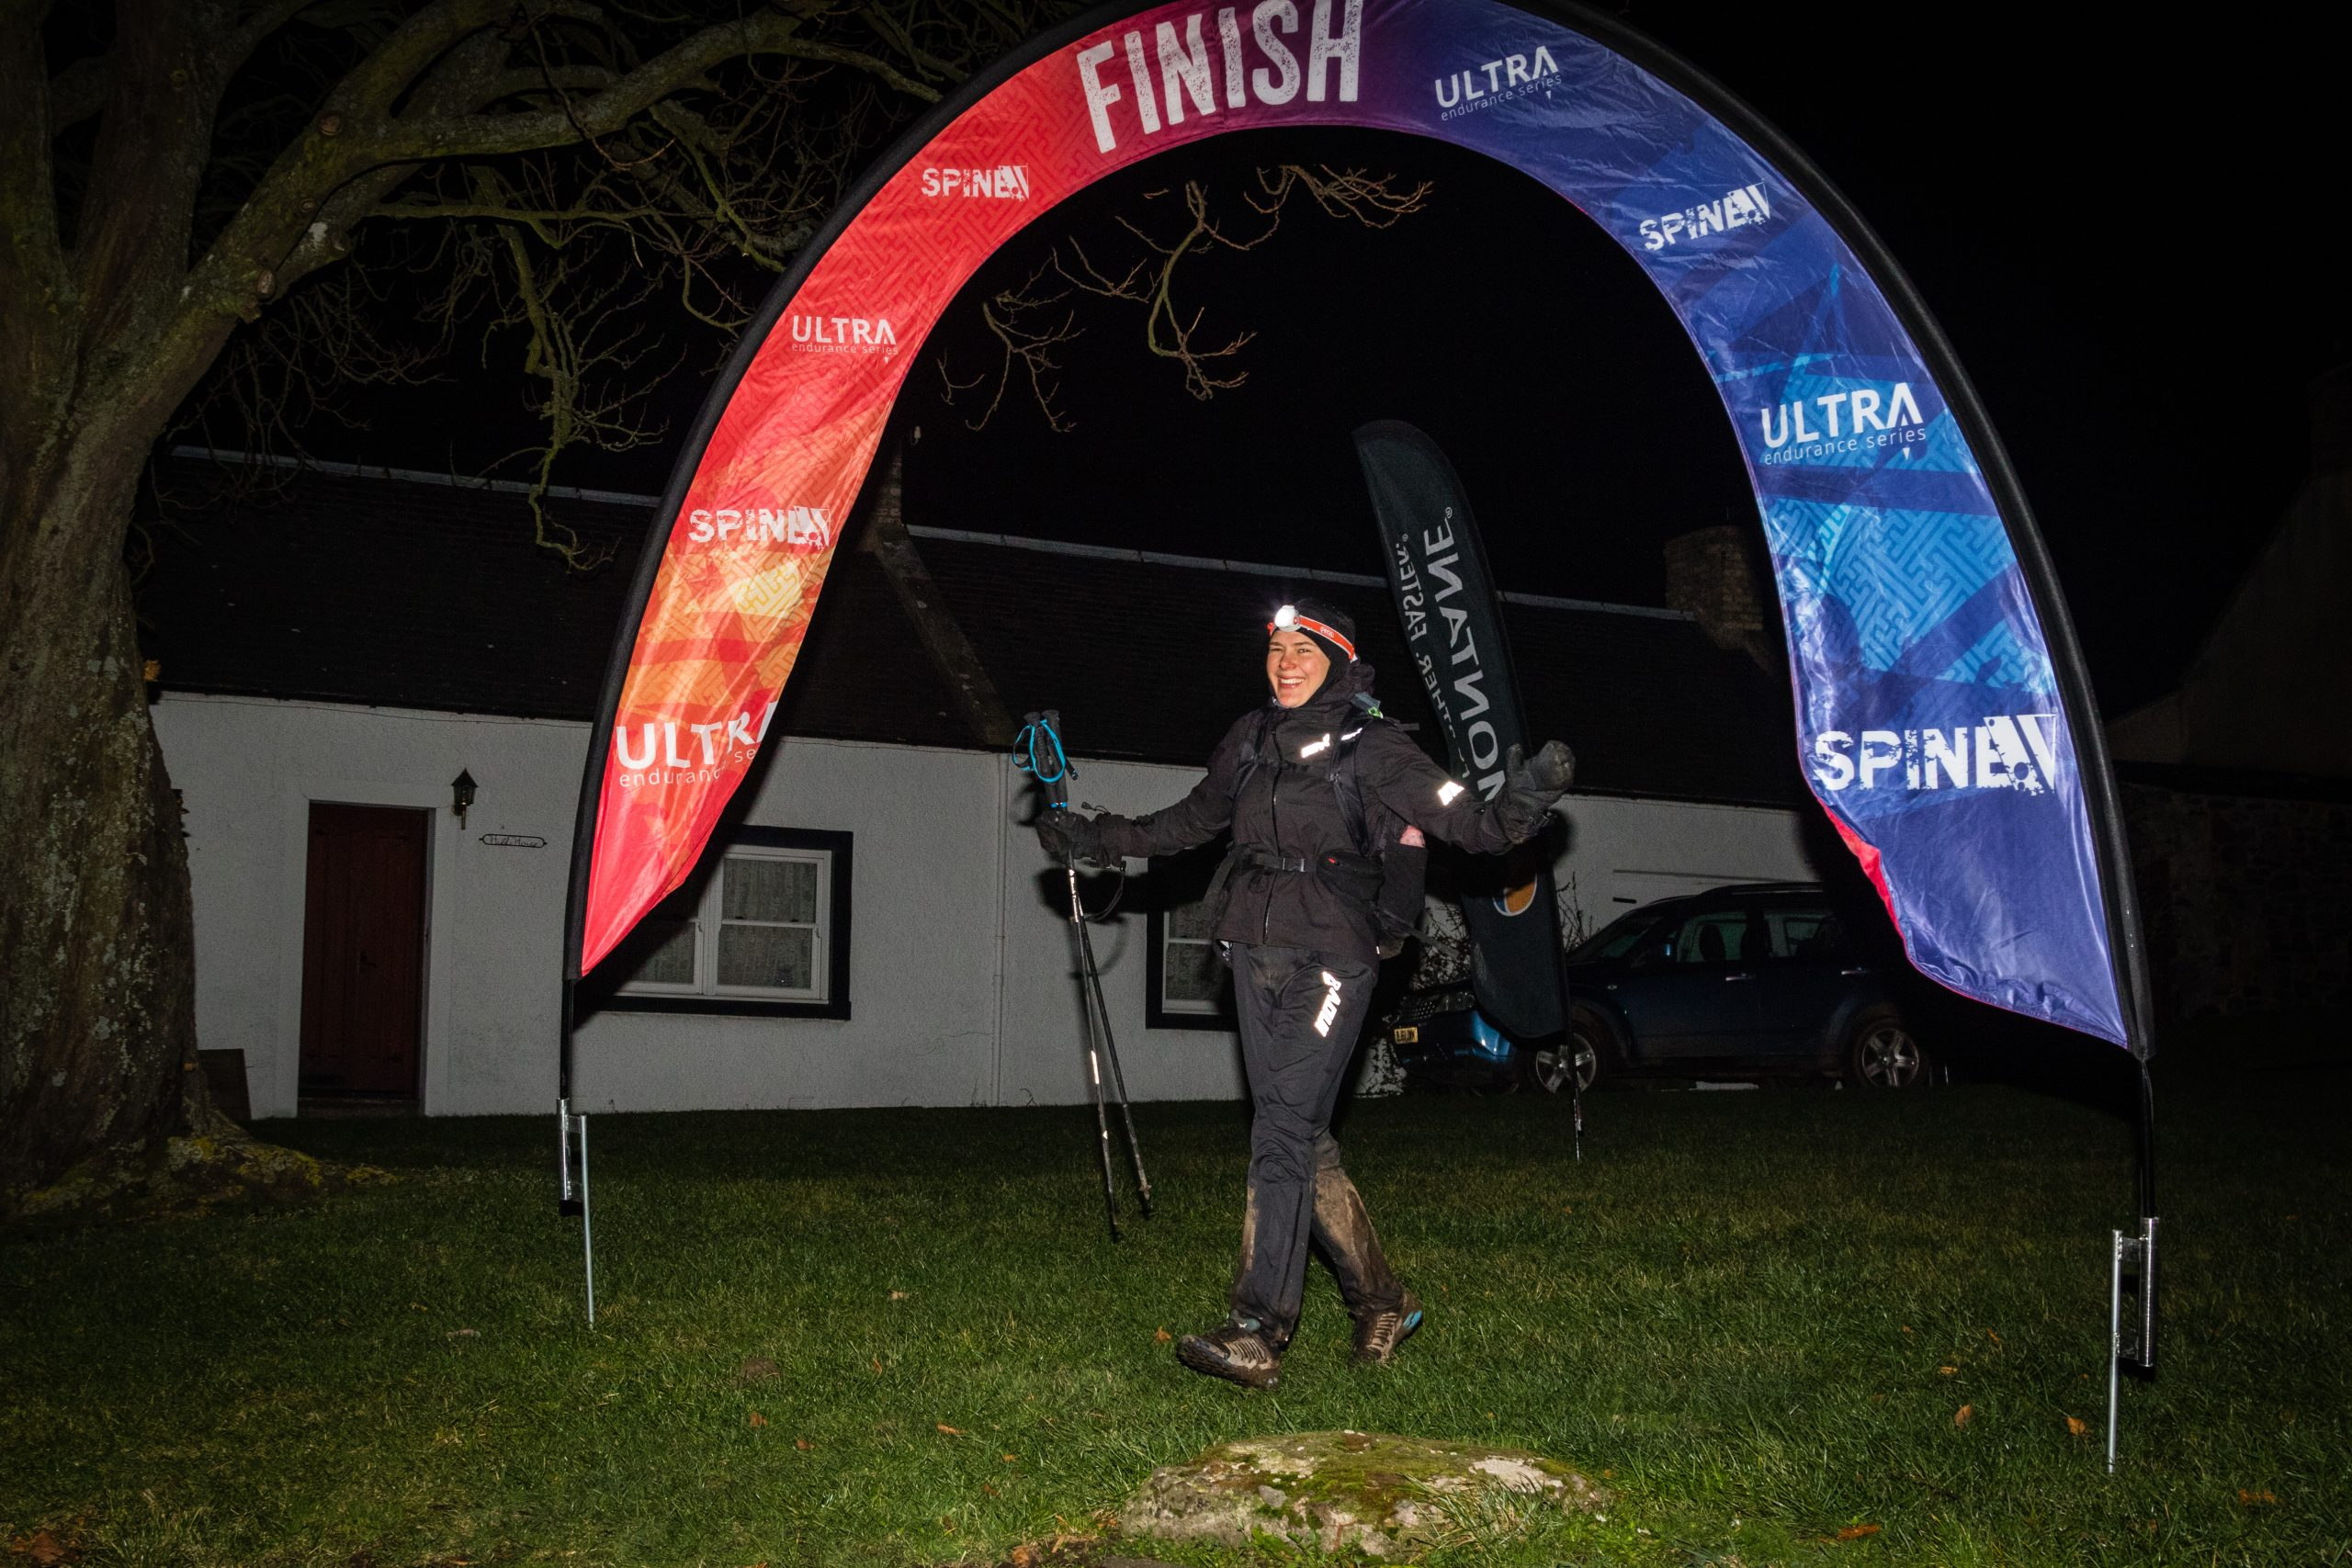 Full interview with Jasmin Paris, Montane Spine Race record-holder